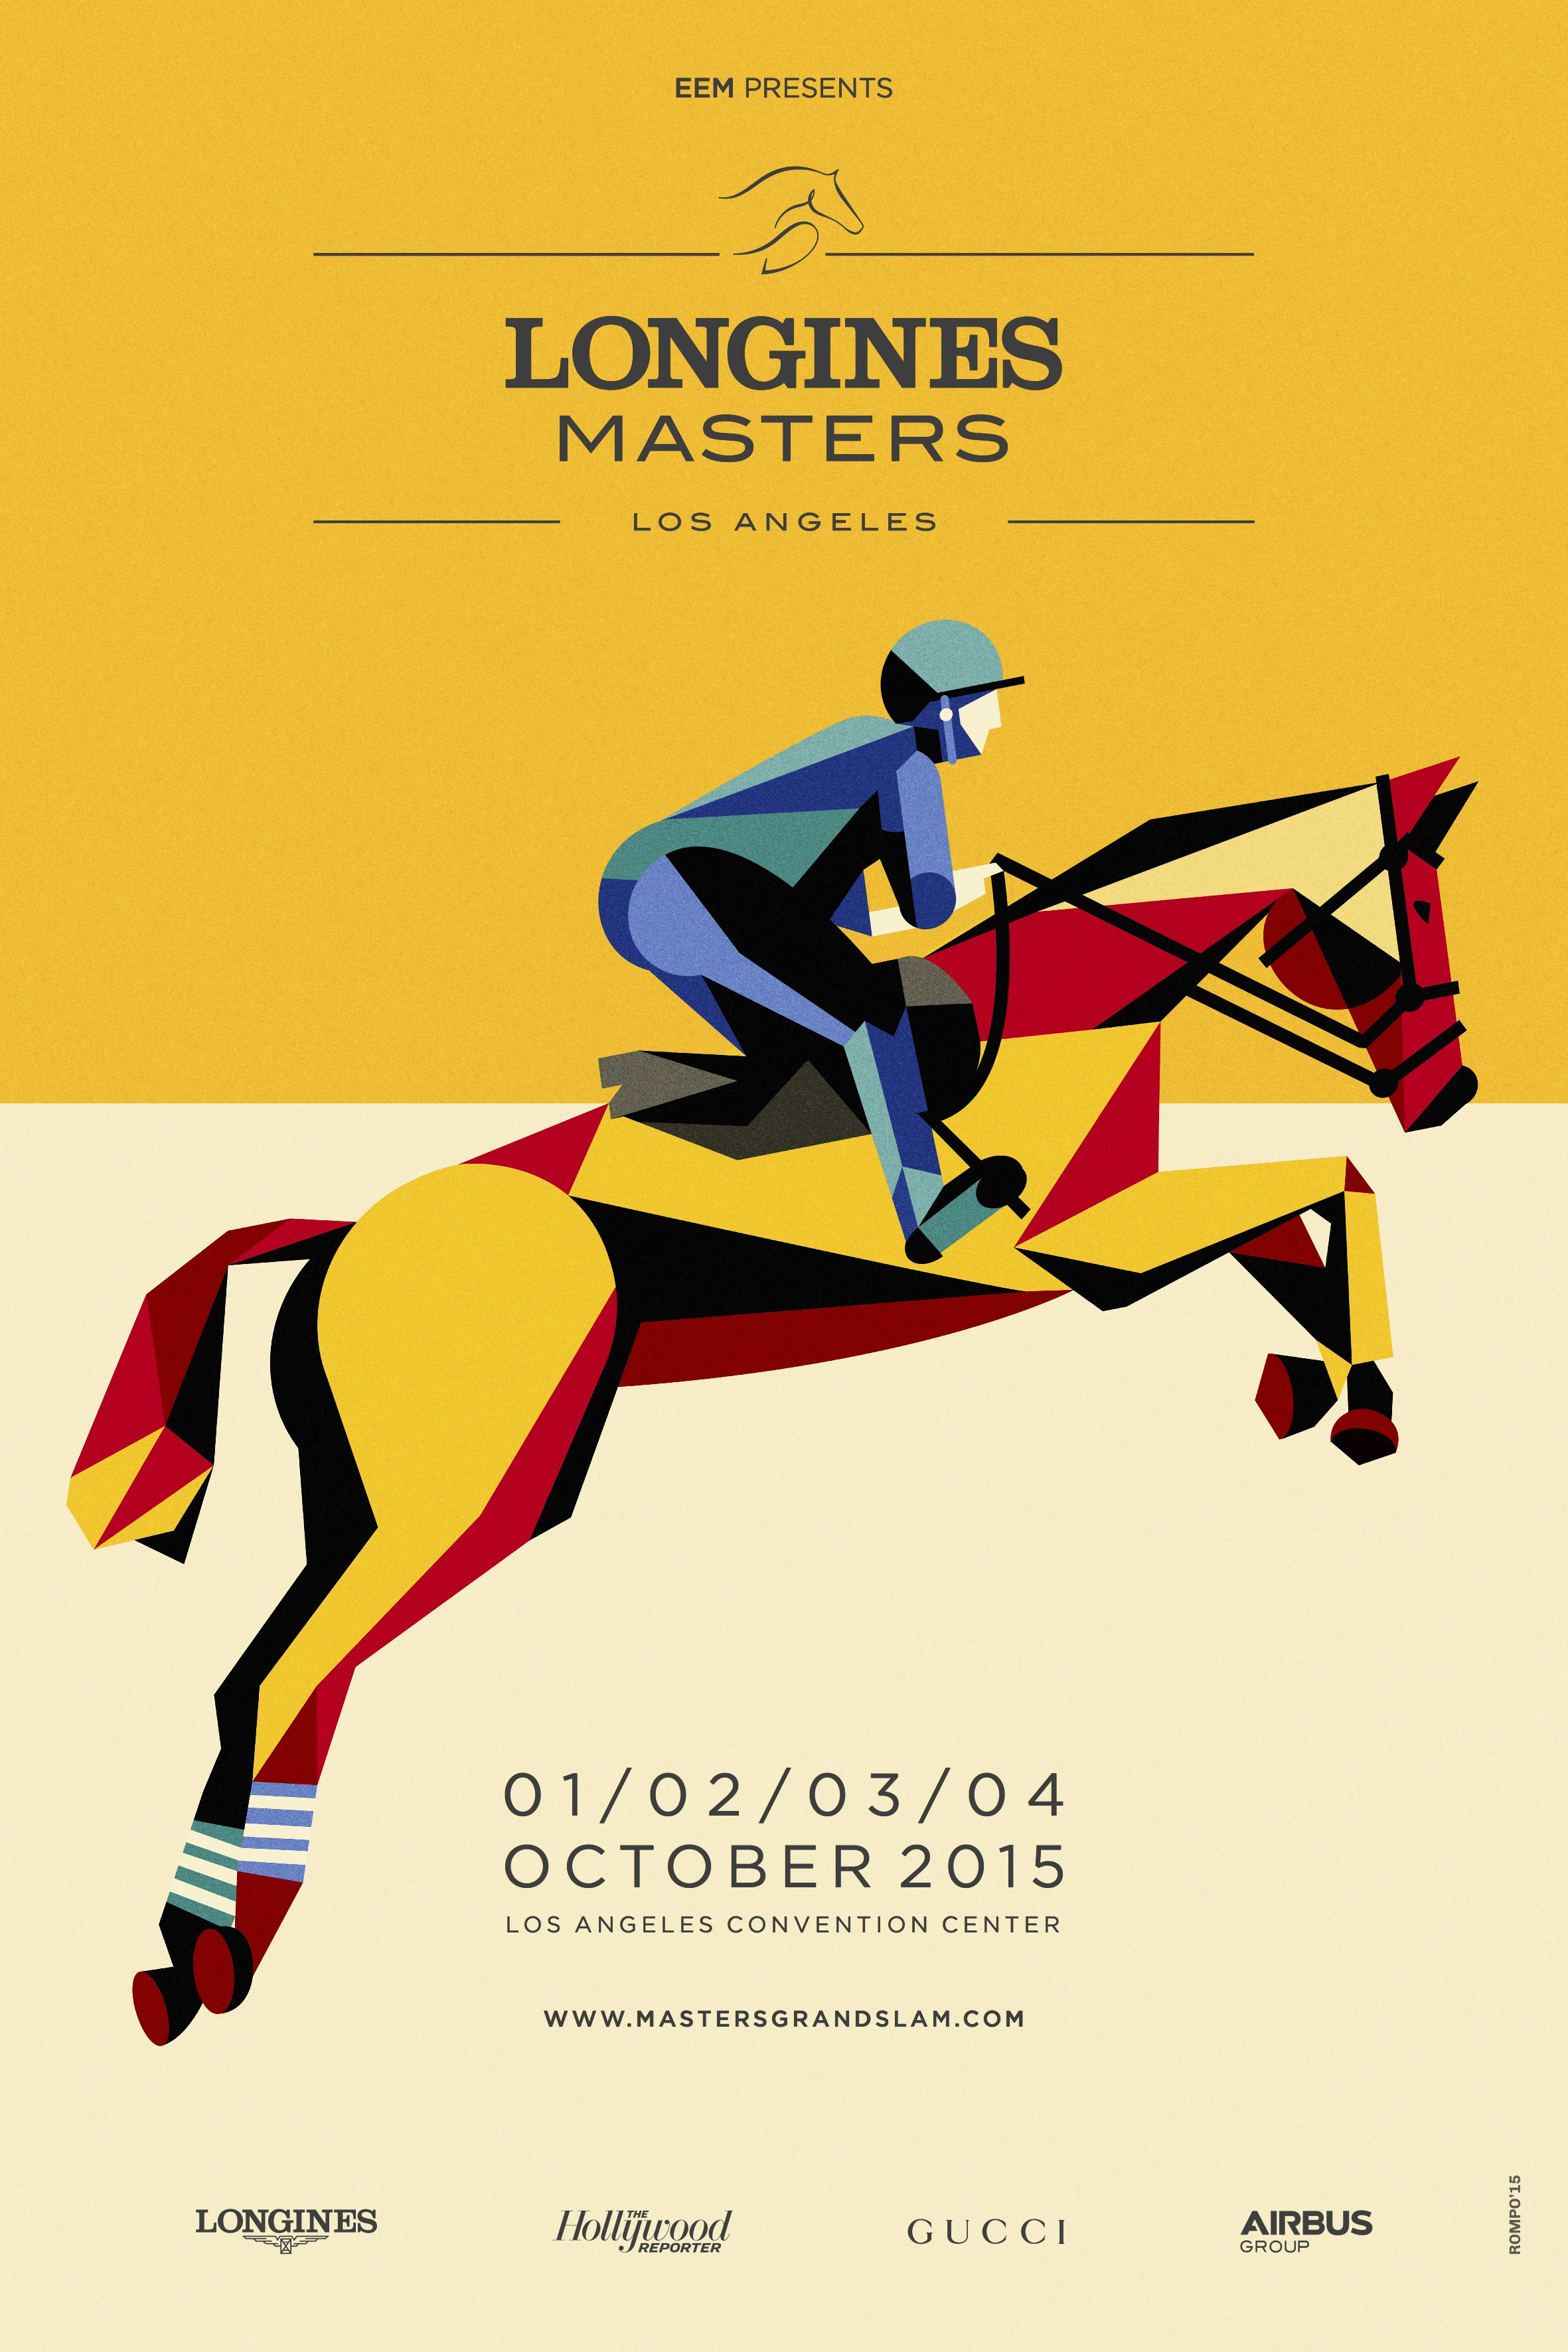 EEM is proud to announce that Longines will become the official title partner of the Longines Masters series on three continents. (Photo courtesy of EEM)